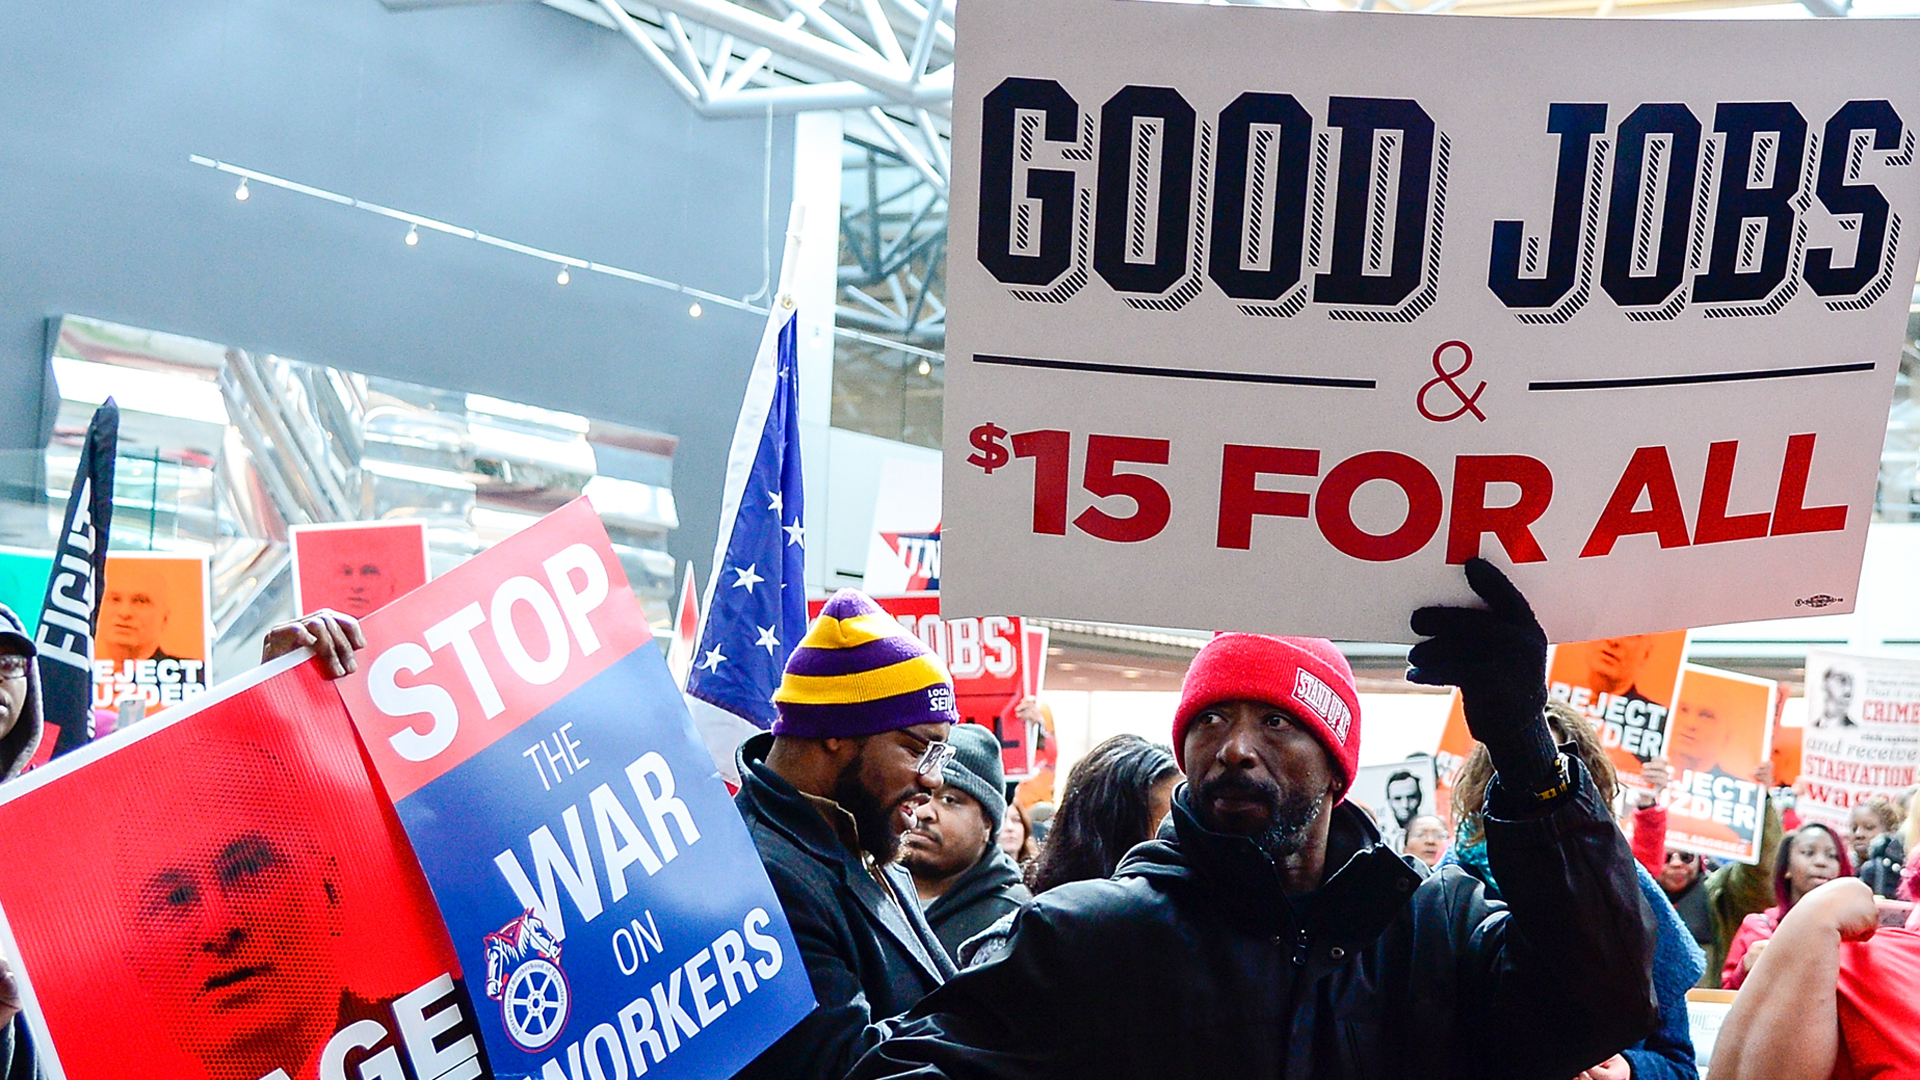 Protesters rally for higher working wages on February 13, 2017, in Kansas City, Missouri. (Credit: Jeff Curry/Getty Images)